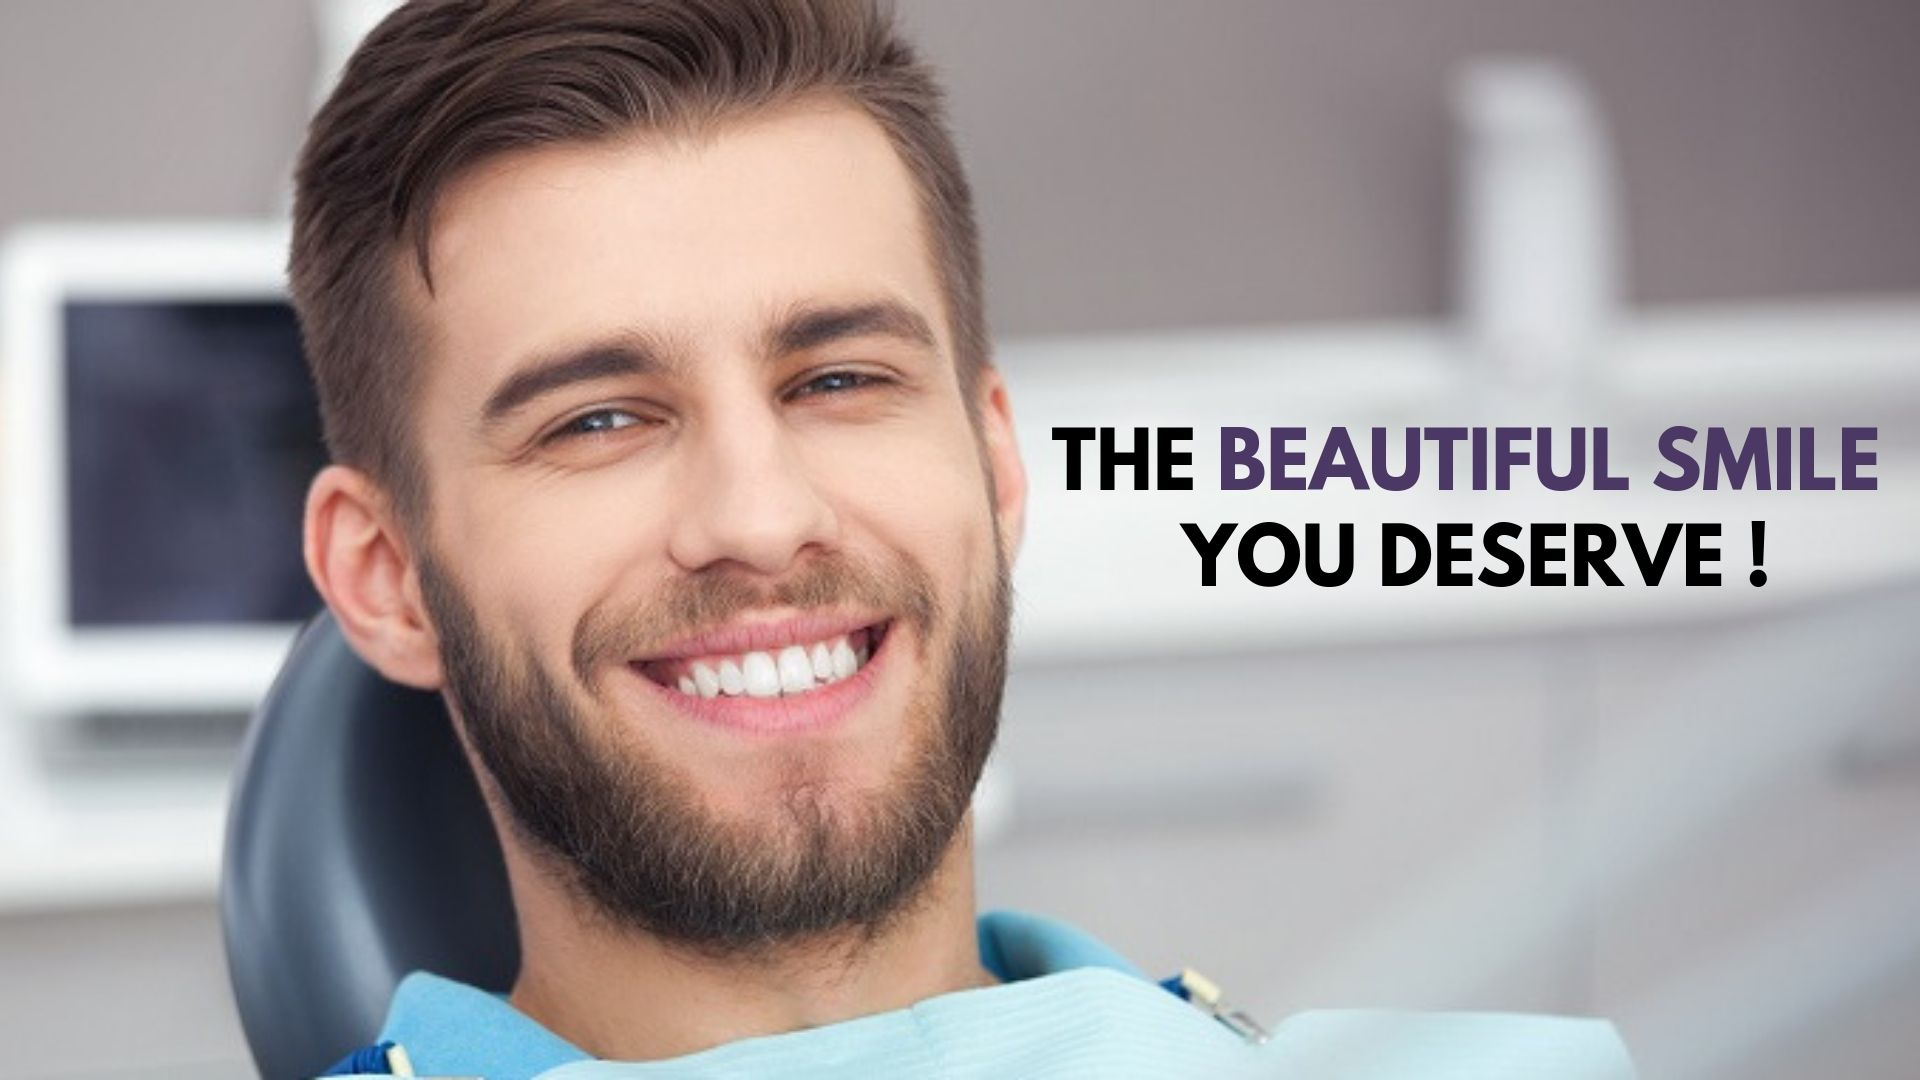 Dental Implants Are A Popular And Permanent Way To Improve The Stability Of Your Mouth If You Have Missing T Teeth Implants Tooth Implant Cost Dental Implants